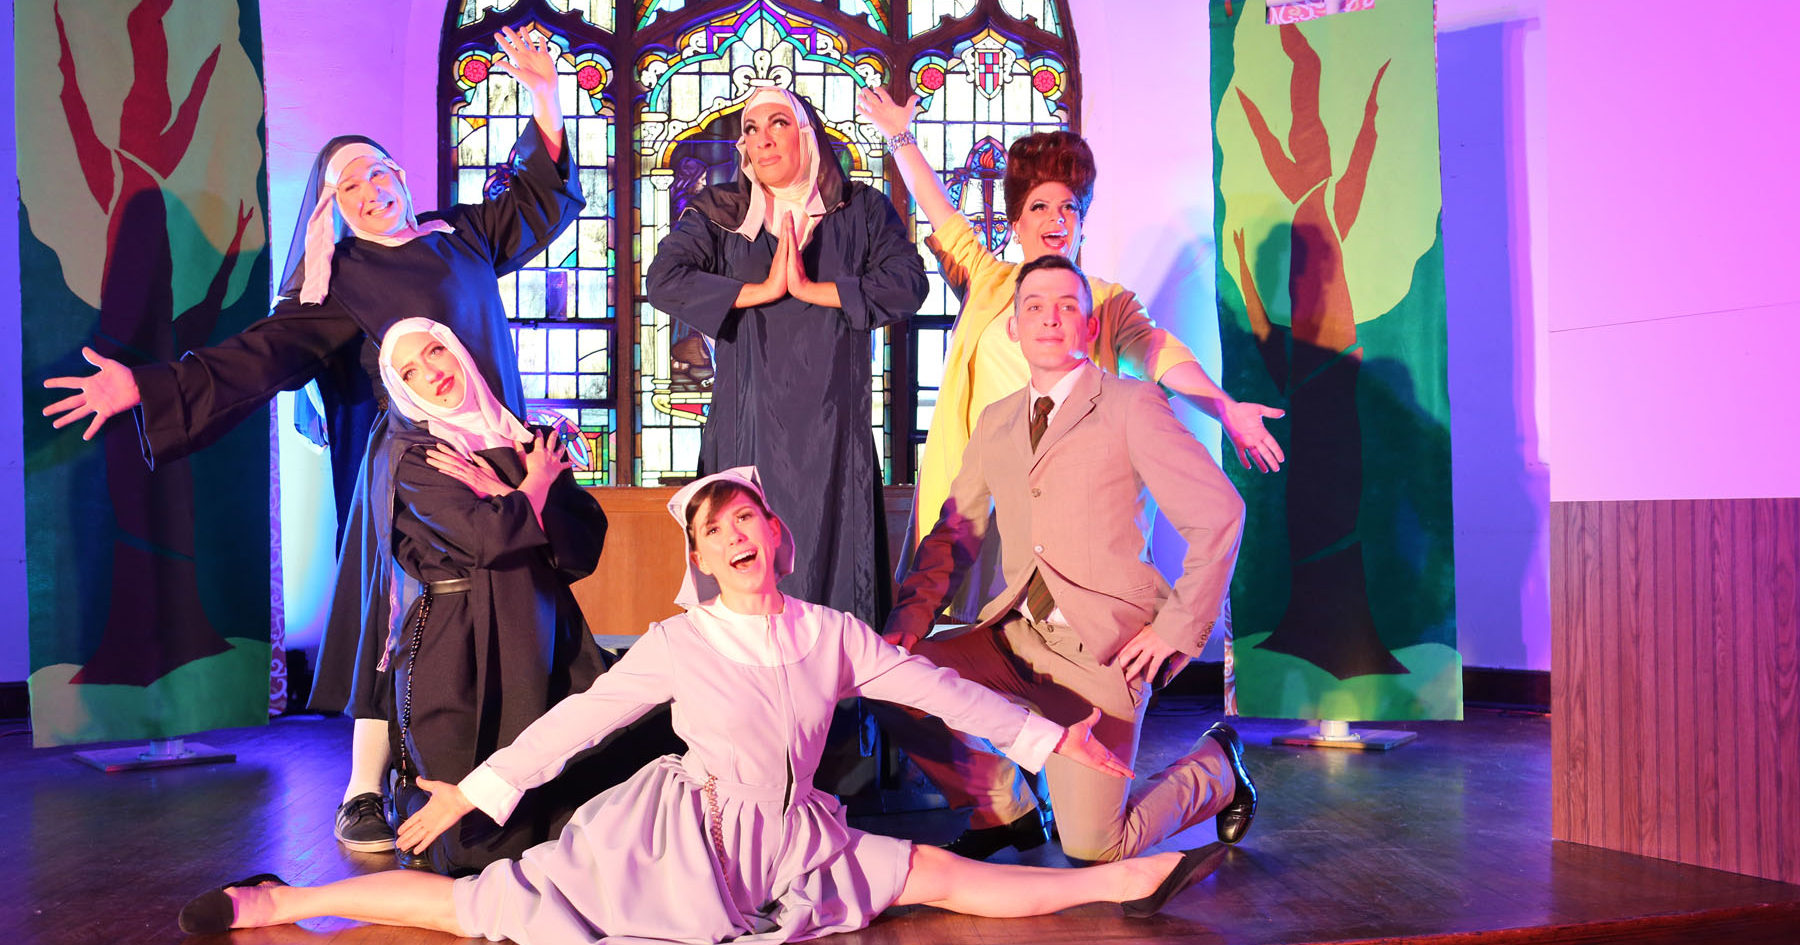 DIVINE SISTER is Divine at Hell in a Handbag